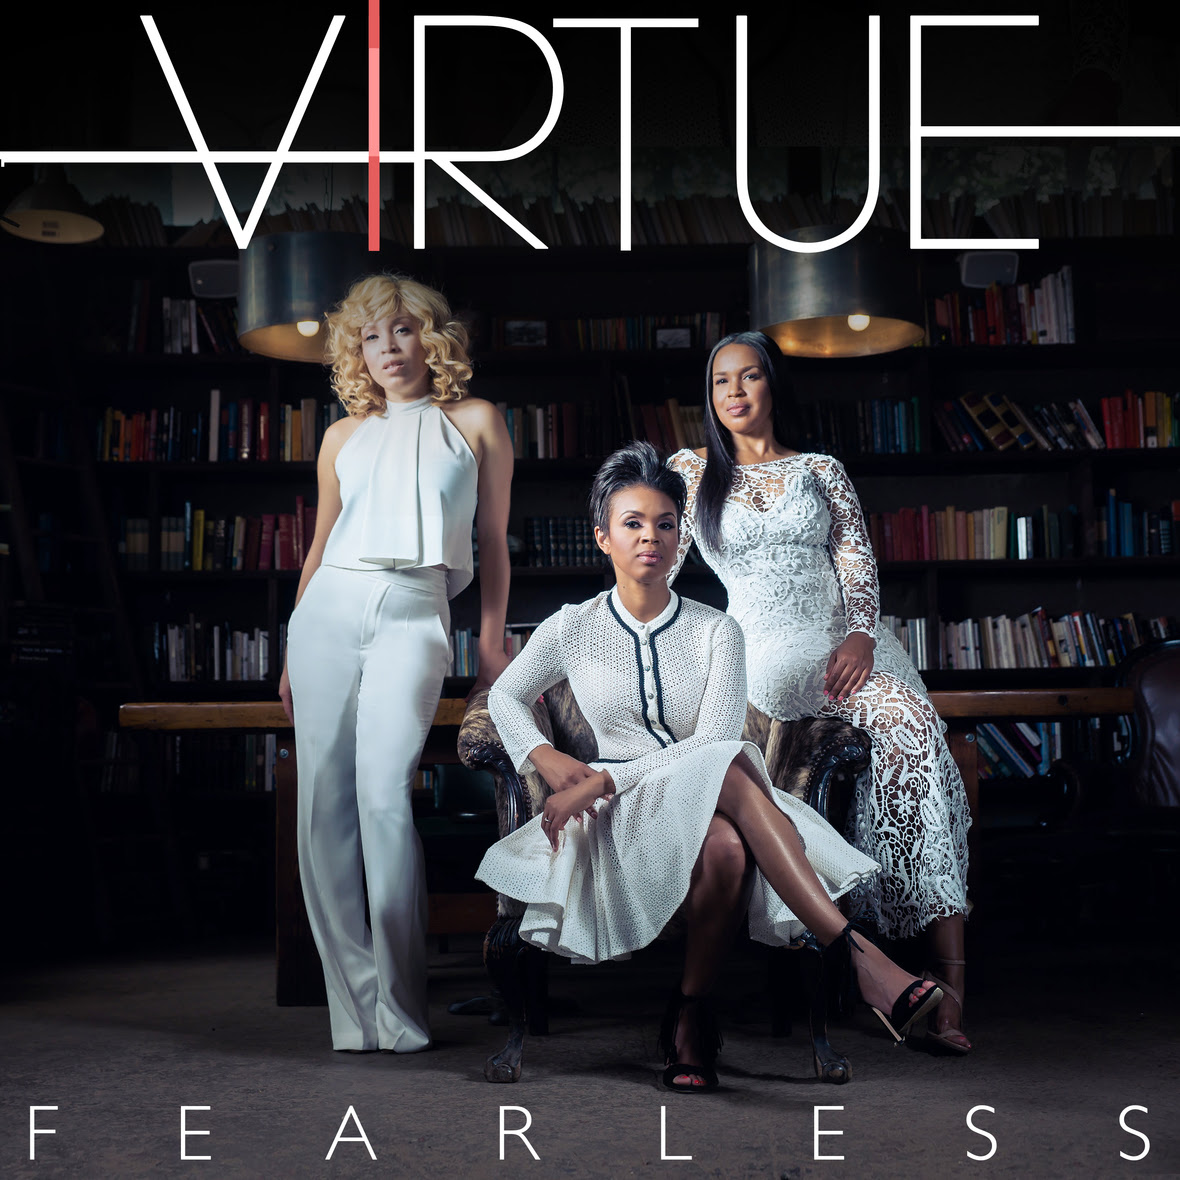 Virtue set to release 'Fearless' album; Pre-order available now